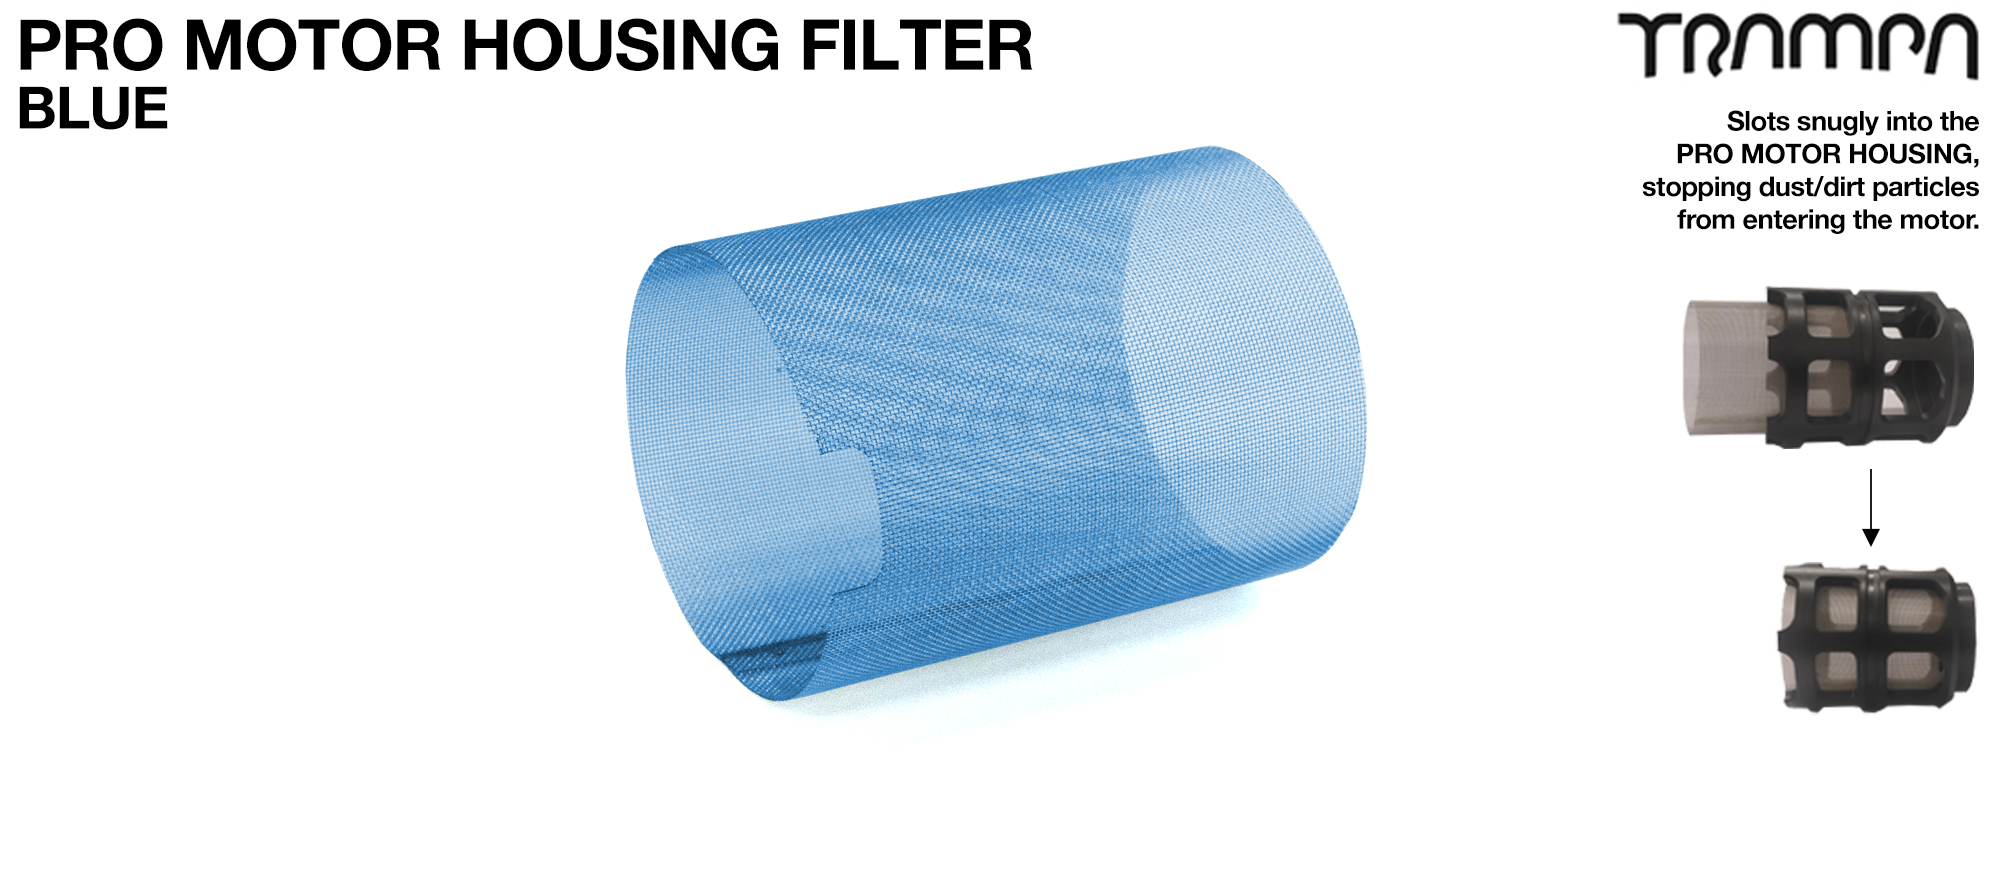 MkII Motor Protection Cover MESH FILTER - BLUE